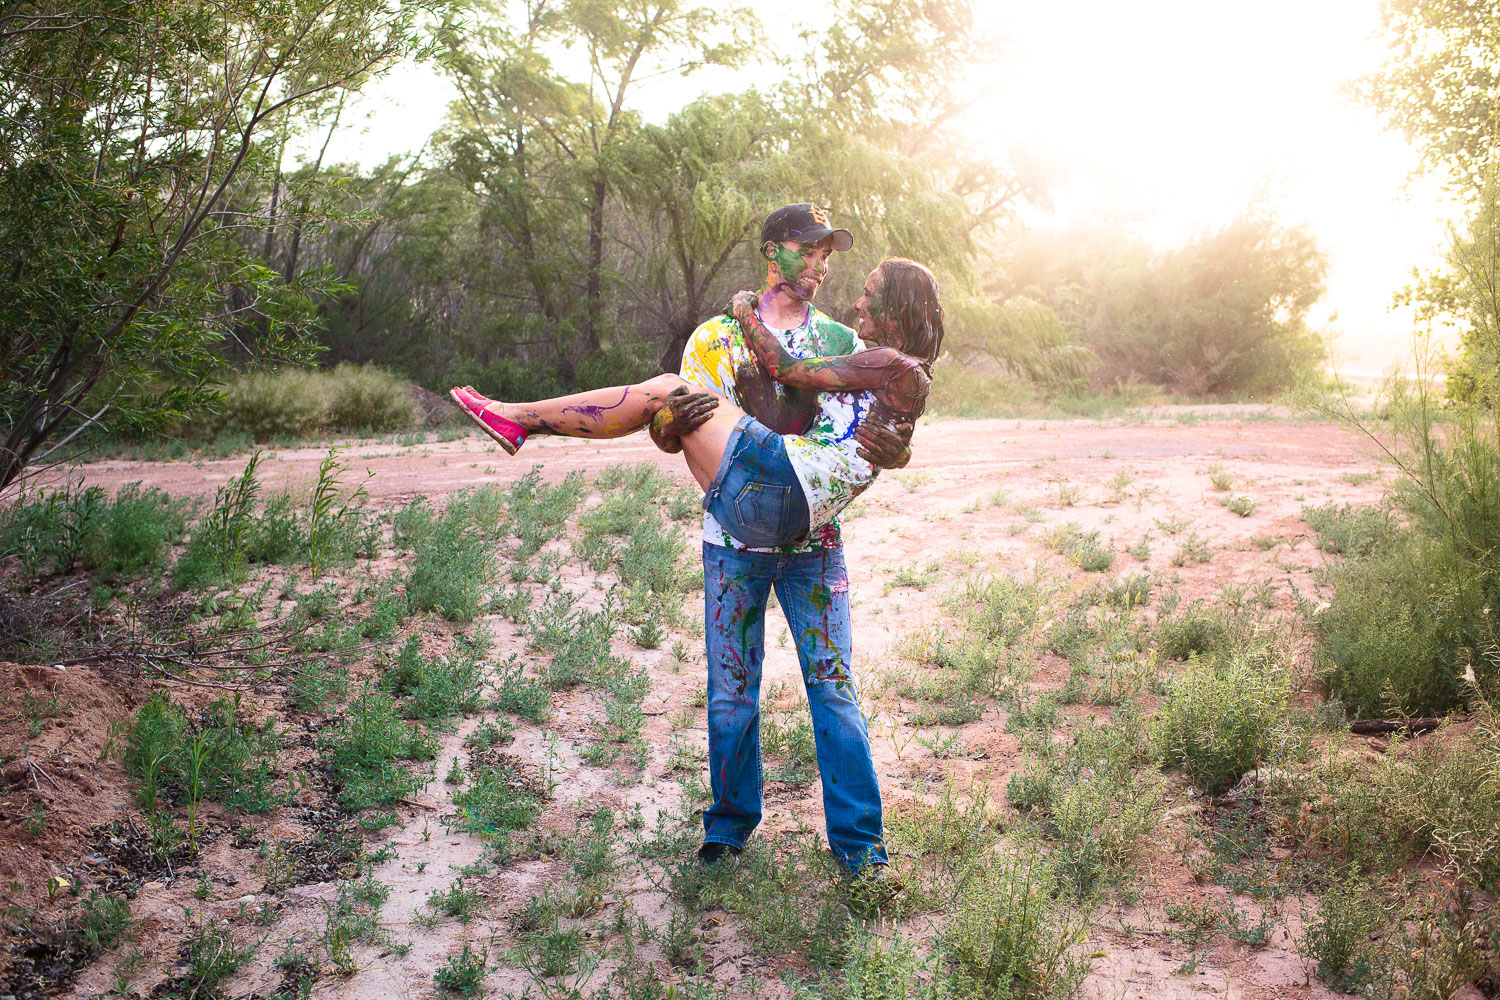 Couple alternative engagement anniversary photoshoot paint fight creative photographer Southern Utah